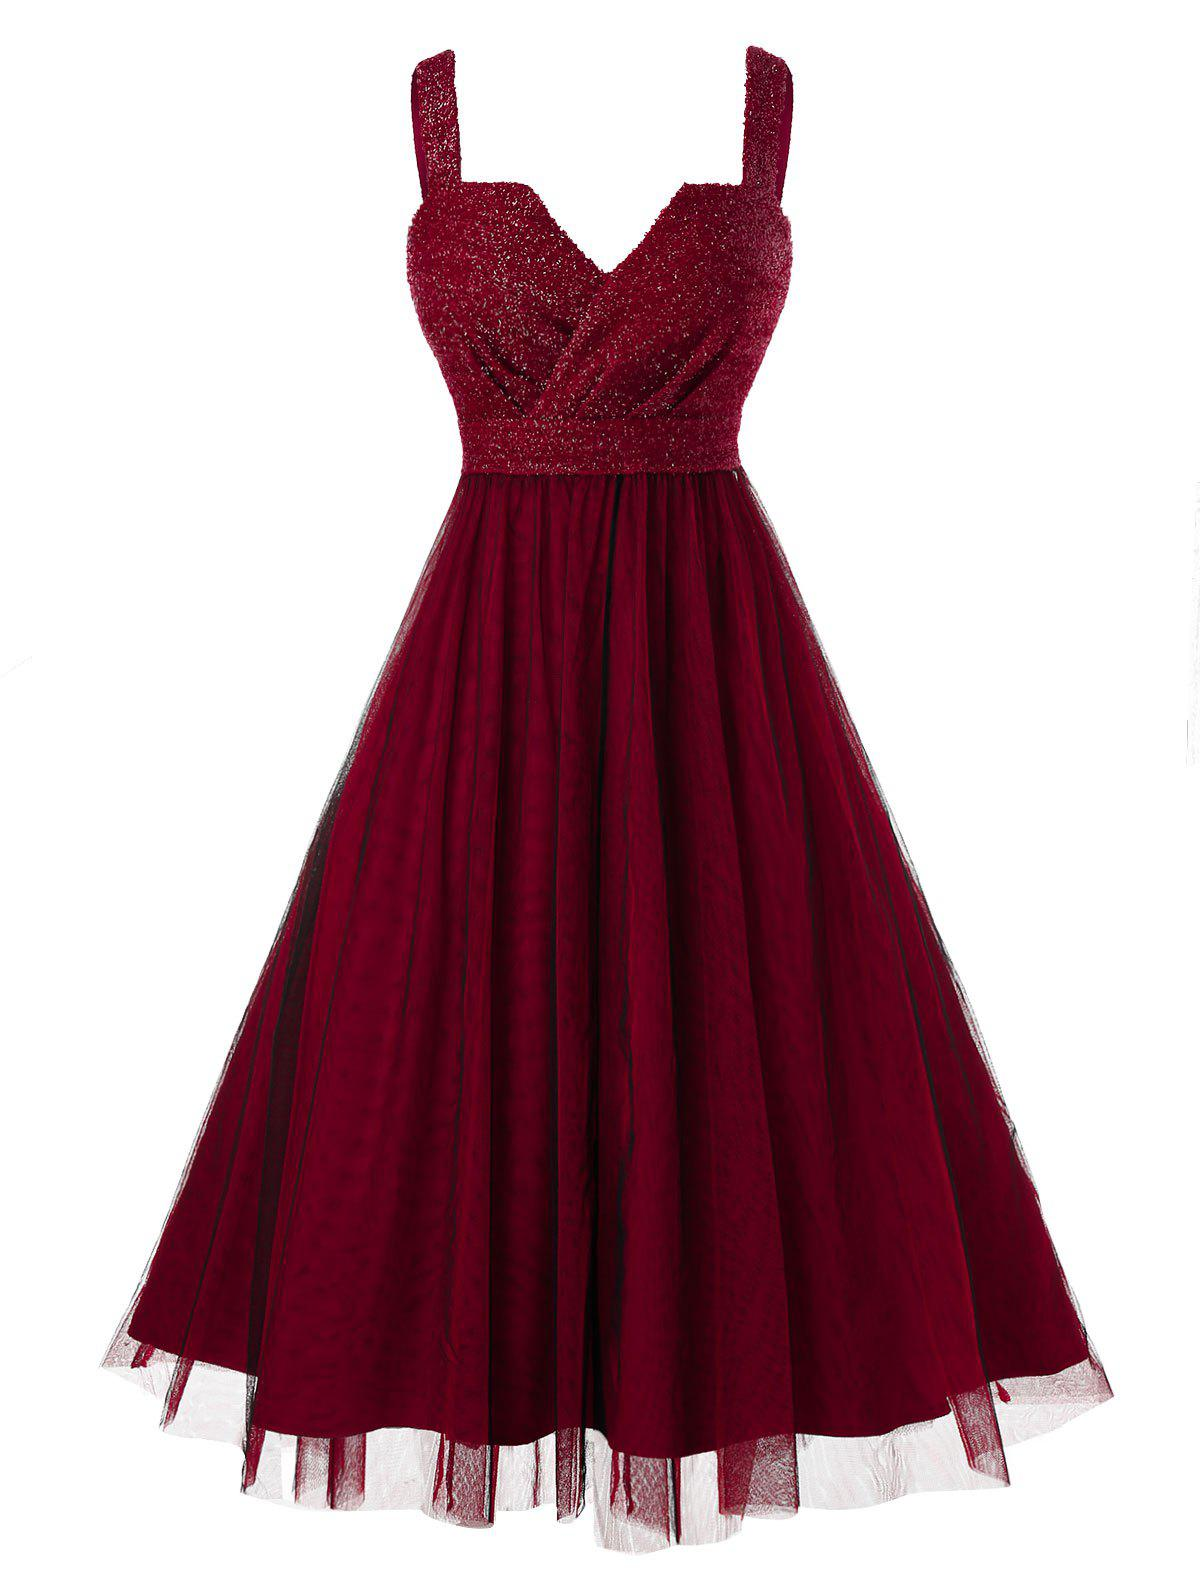 Plus Size Sleeveless Metallic Thread Mesh Prom Dress - RED WINE L